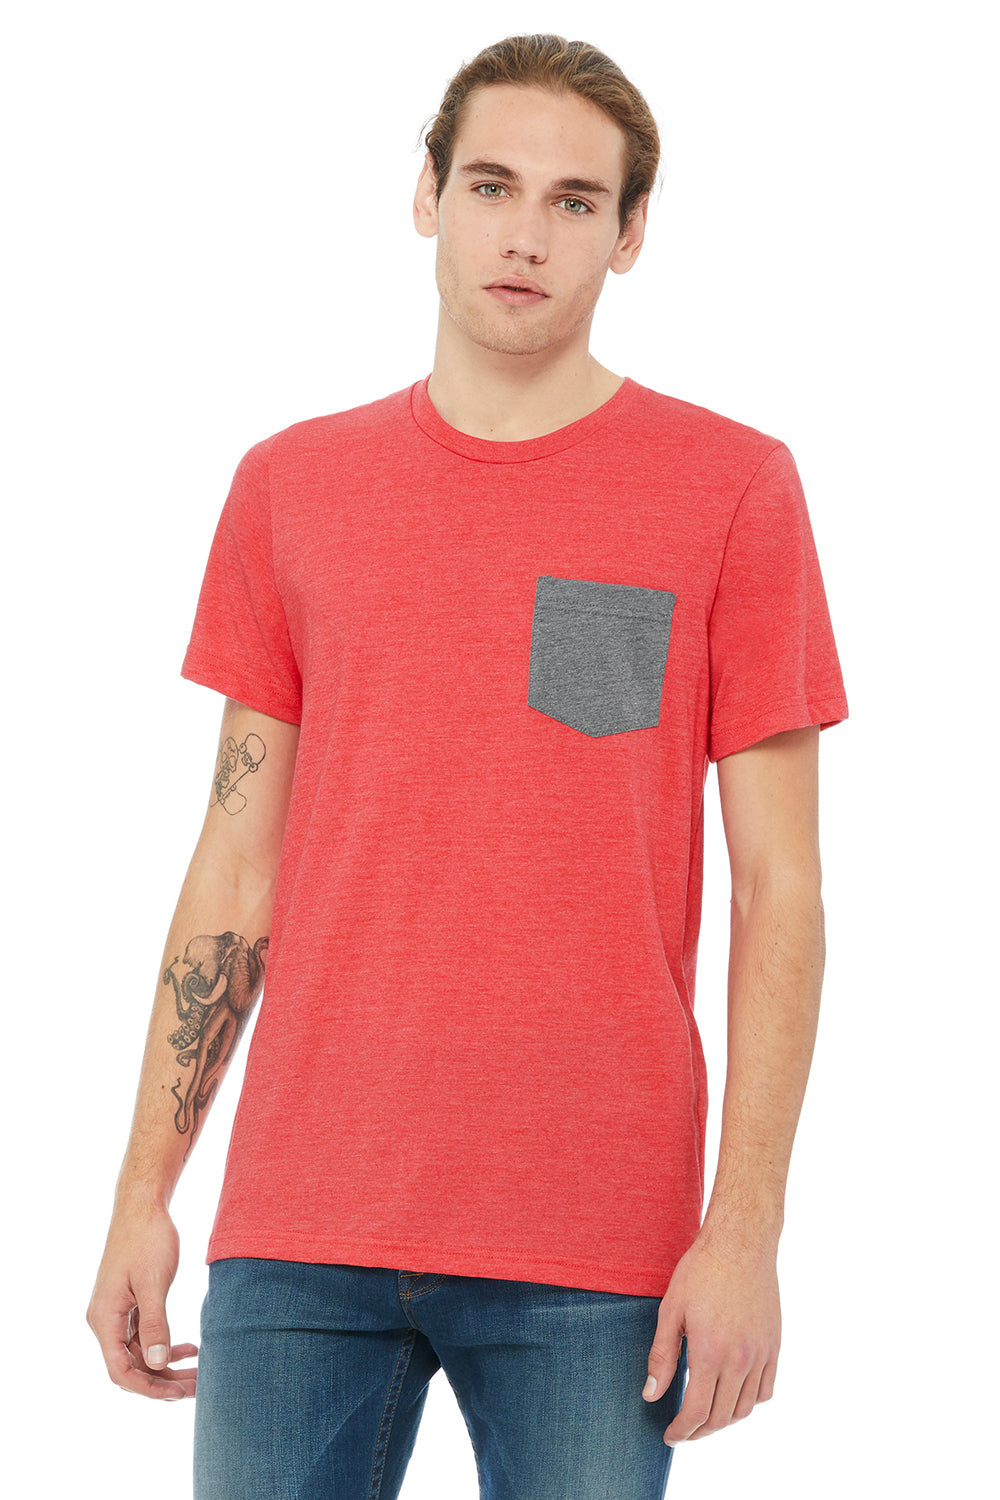 Bella + Canvas 3021 Mens Jersey Short Sleeve Crewneck T-Shirt w/ Pocket Heather Red/Heather Grey Front